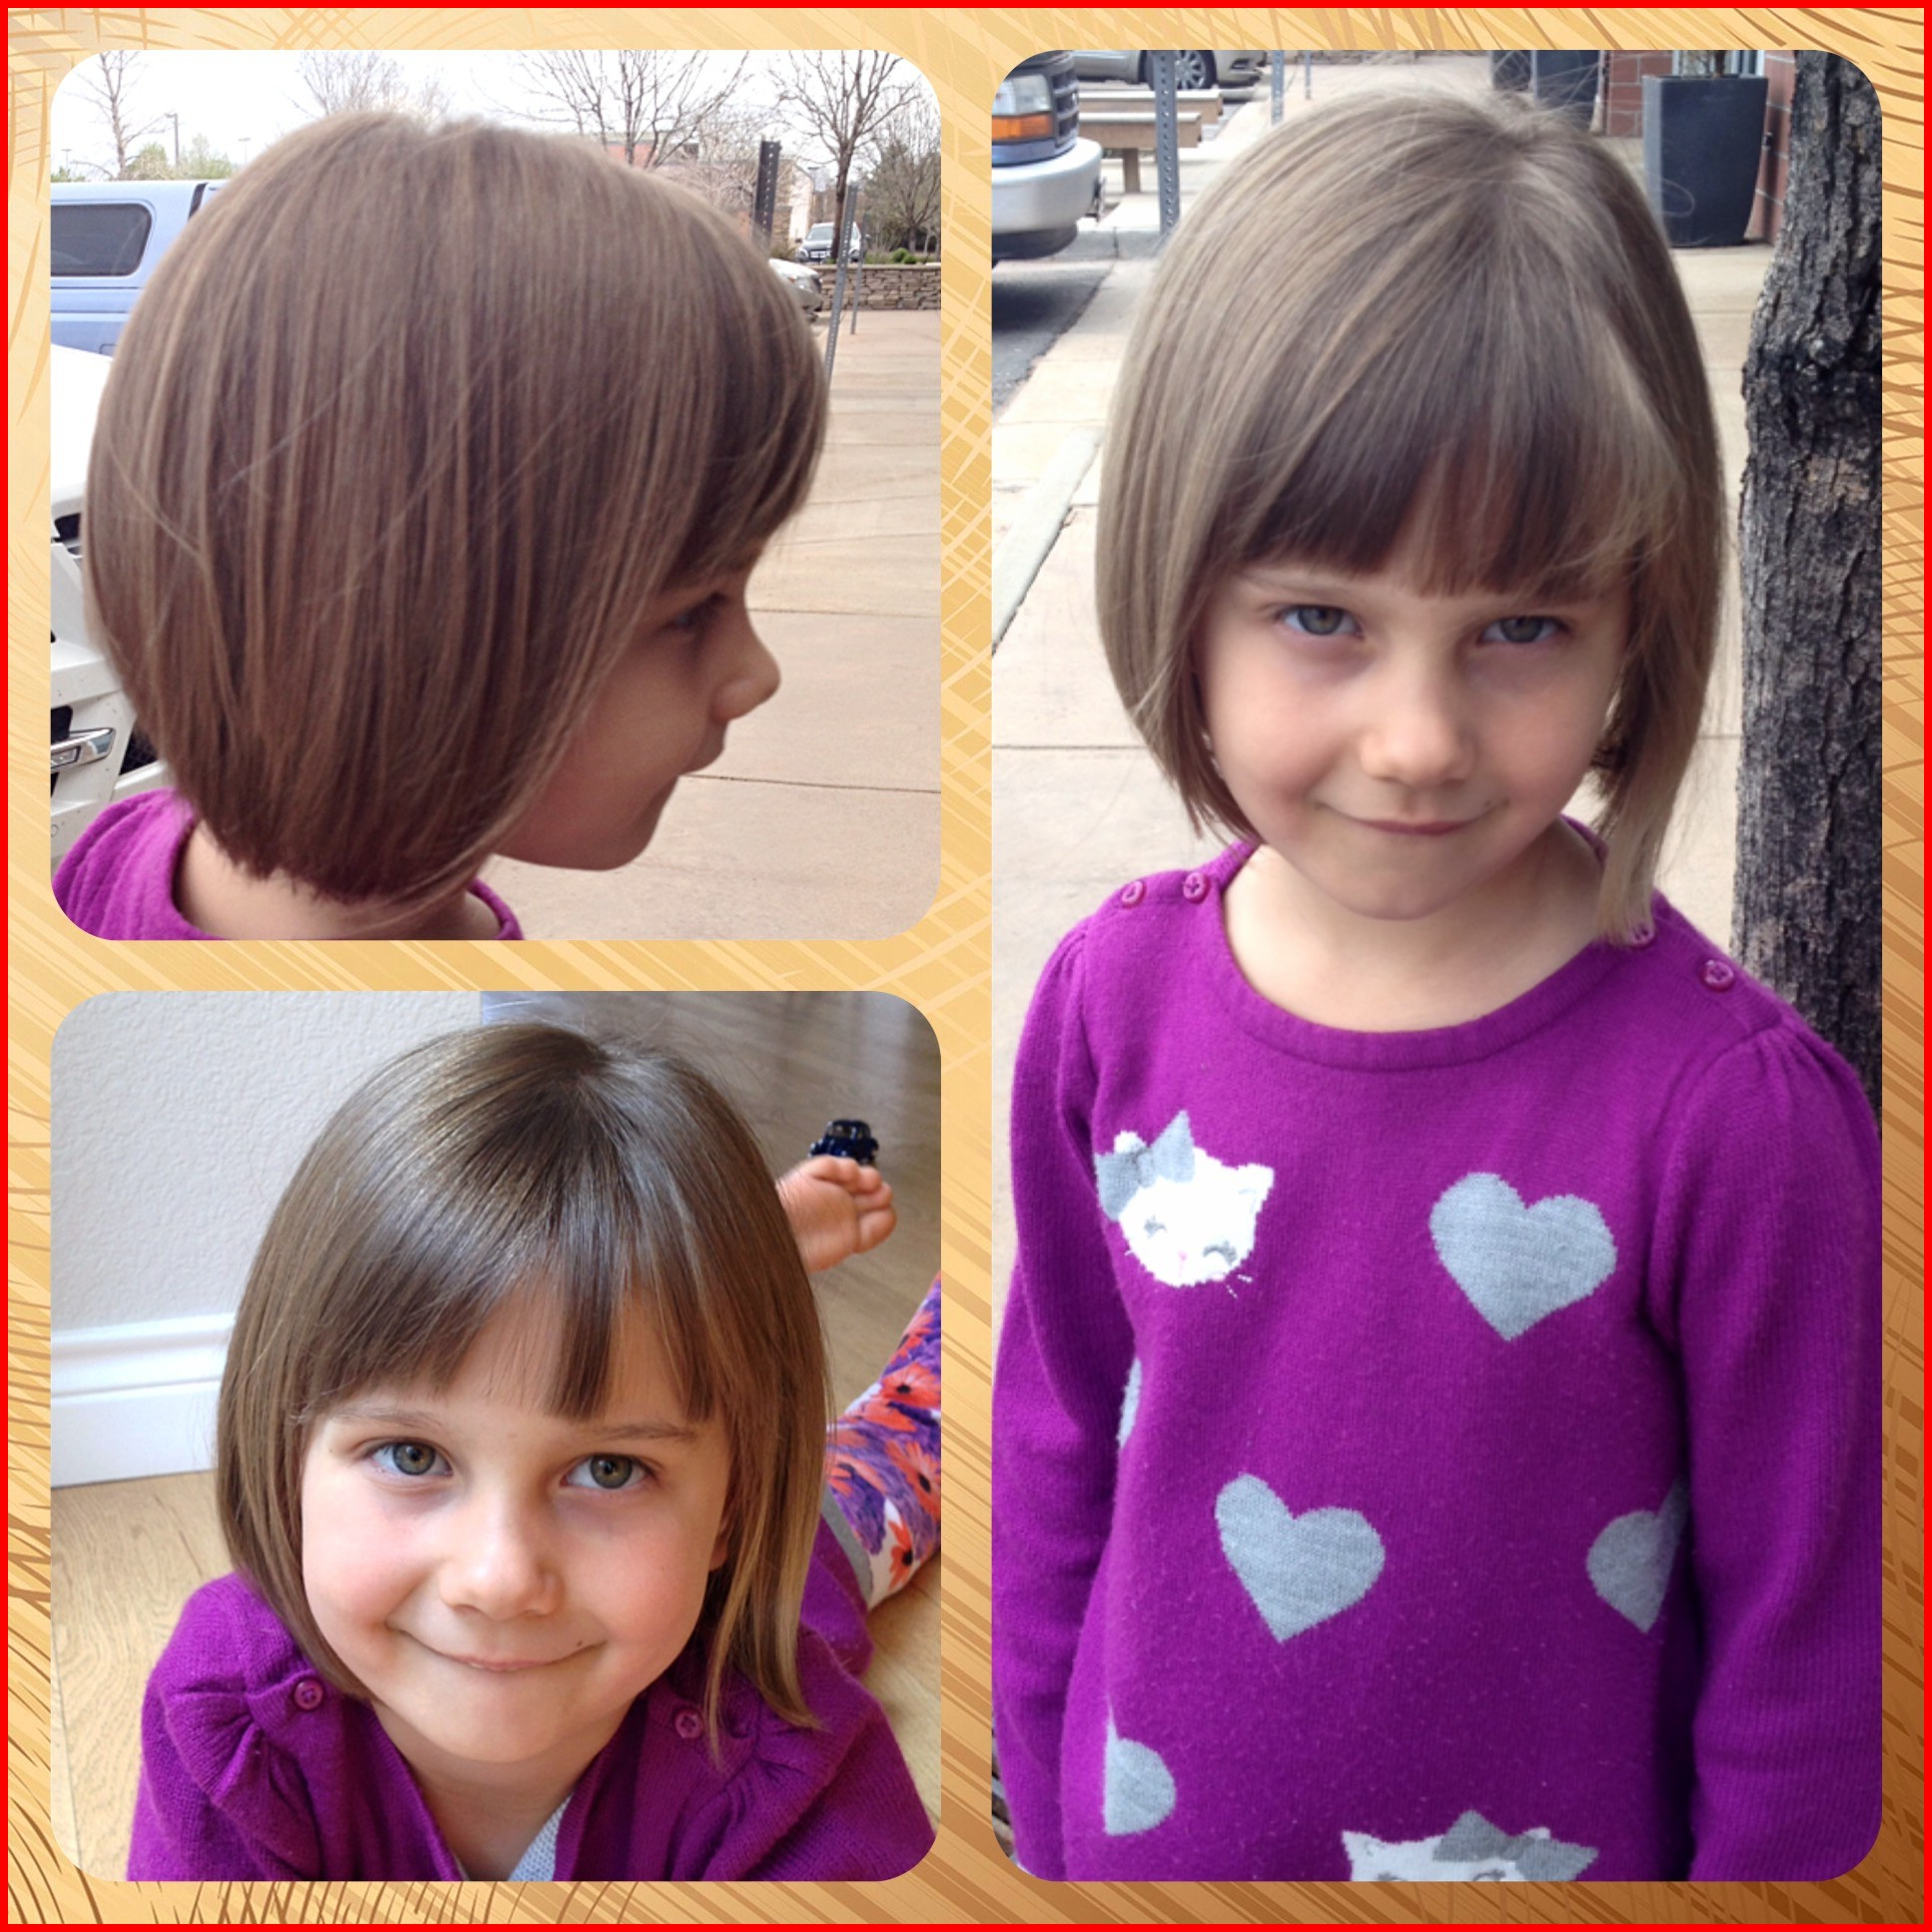 Hairstyles For Little Girls With Short Hair 228679 Short Hairstyle Within Little Girl Short Hairstyles Pictures (View 20 of 25)